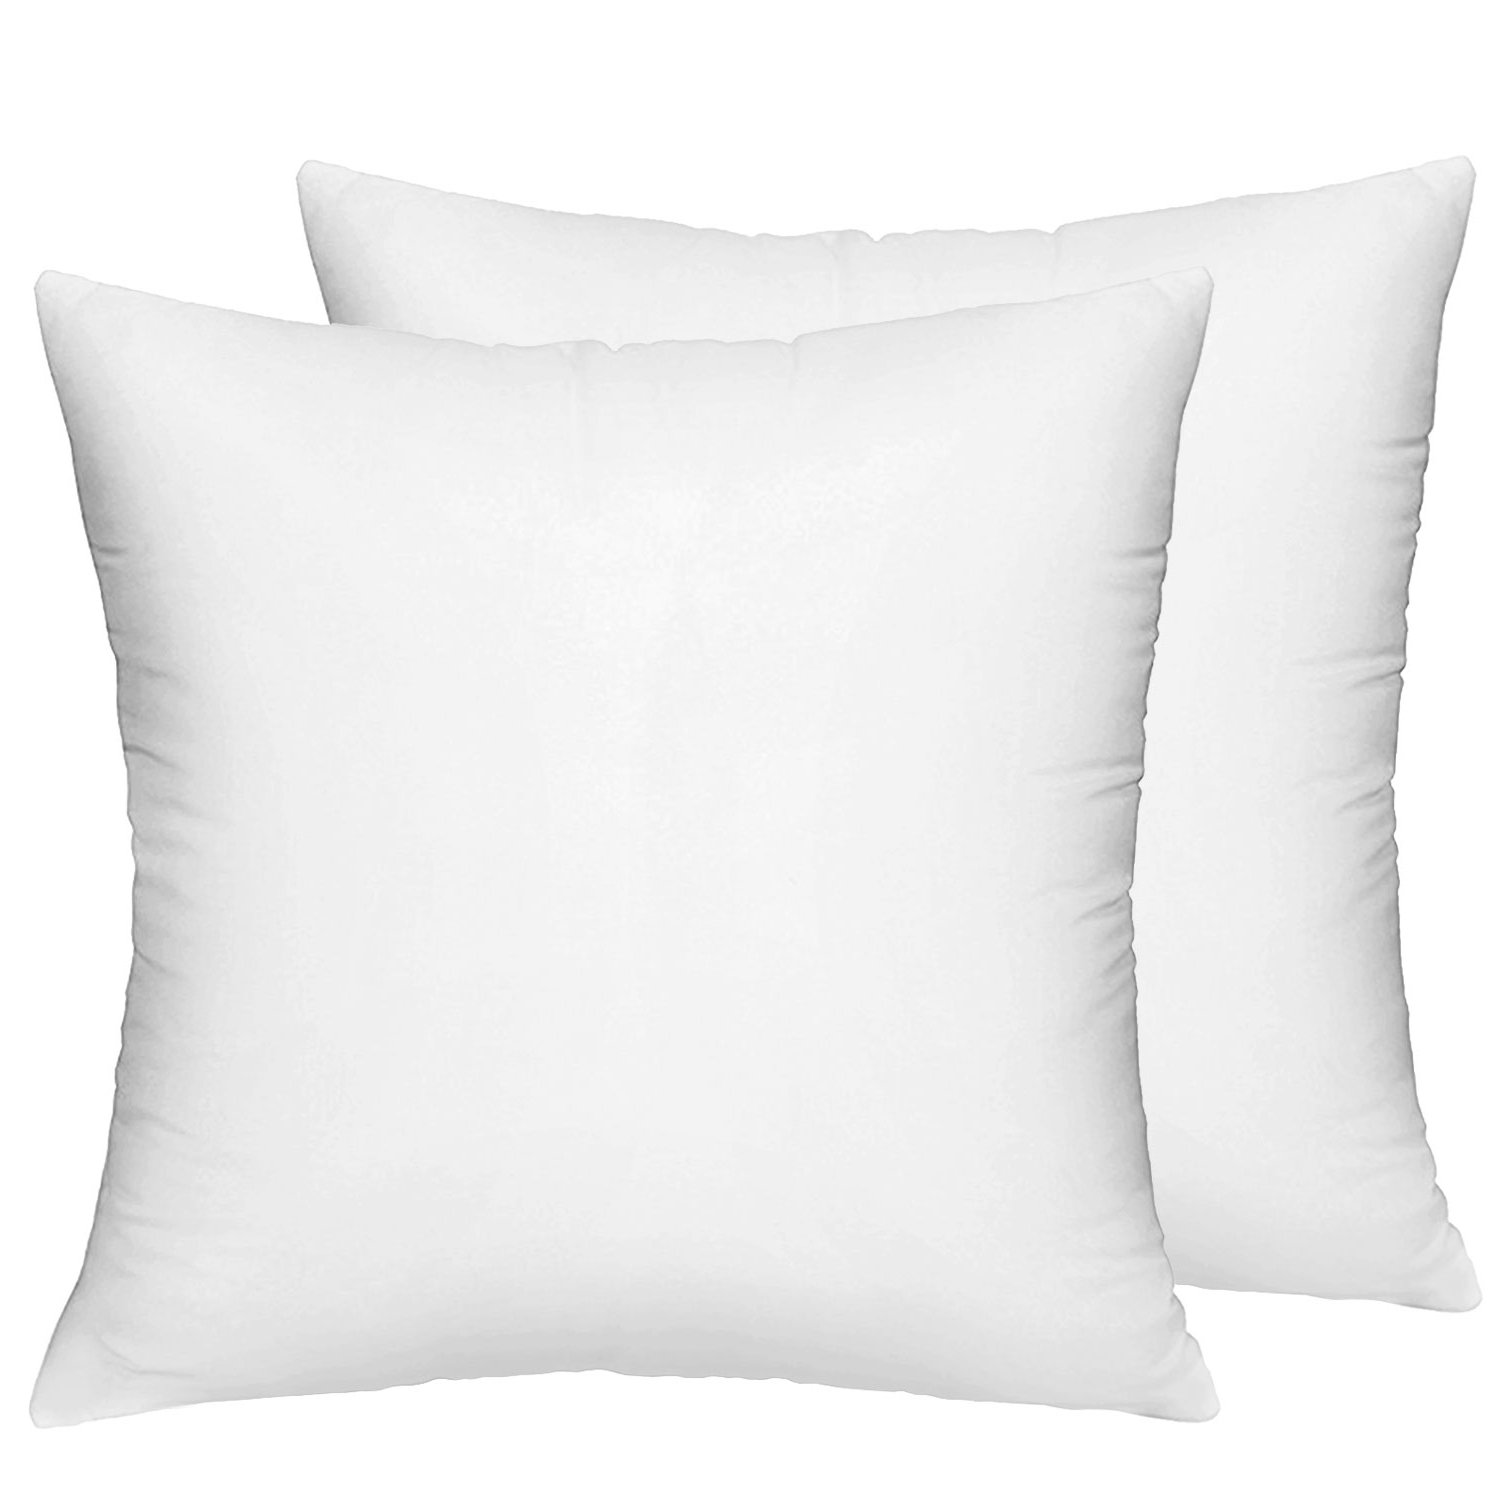 HIPPIH 2 Pack 18 x 18 Pillow Inserts, Hypoallergenic Decorative Square Pillow Form Insert